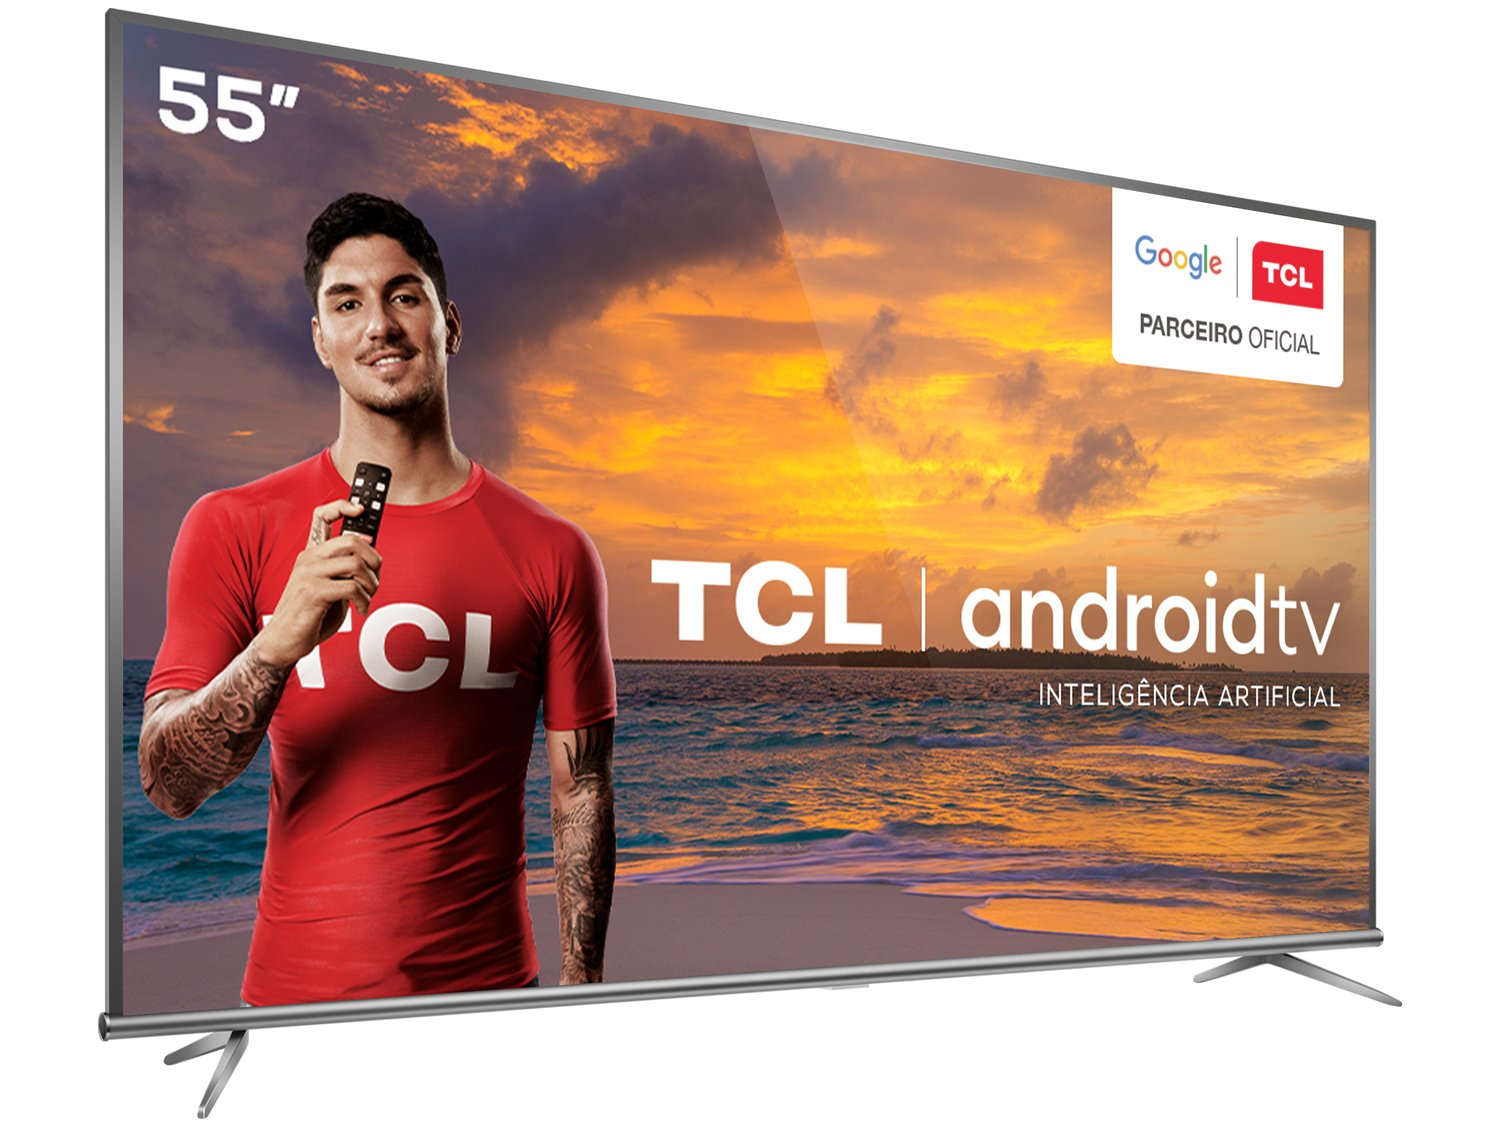 "Smart TV LED 55"" 4K TCL 55P8M com Android TV, Controle Remoto Comando de Voz, HDR, Micro Dimming, Google Assistant, Bluetooth, HDMI e USB - 16"